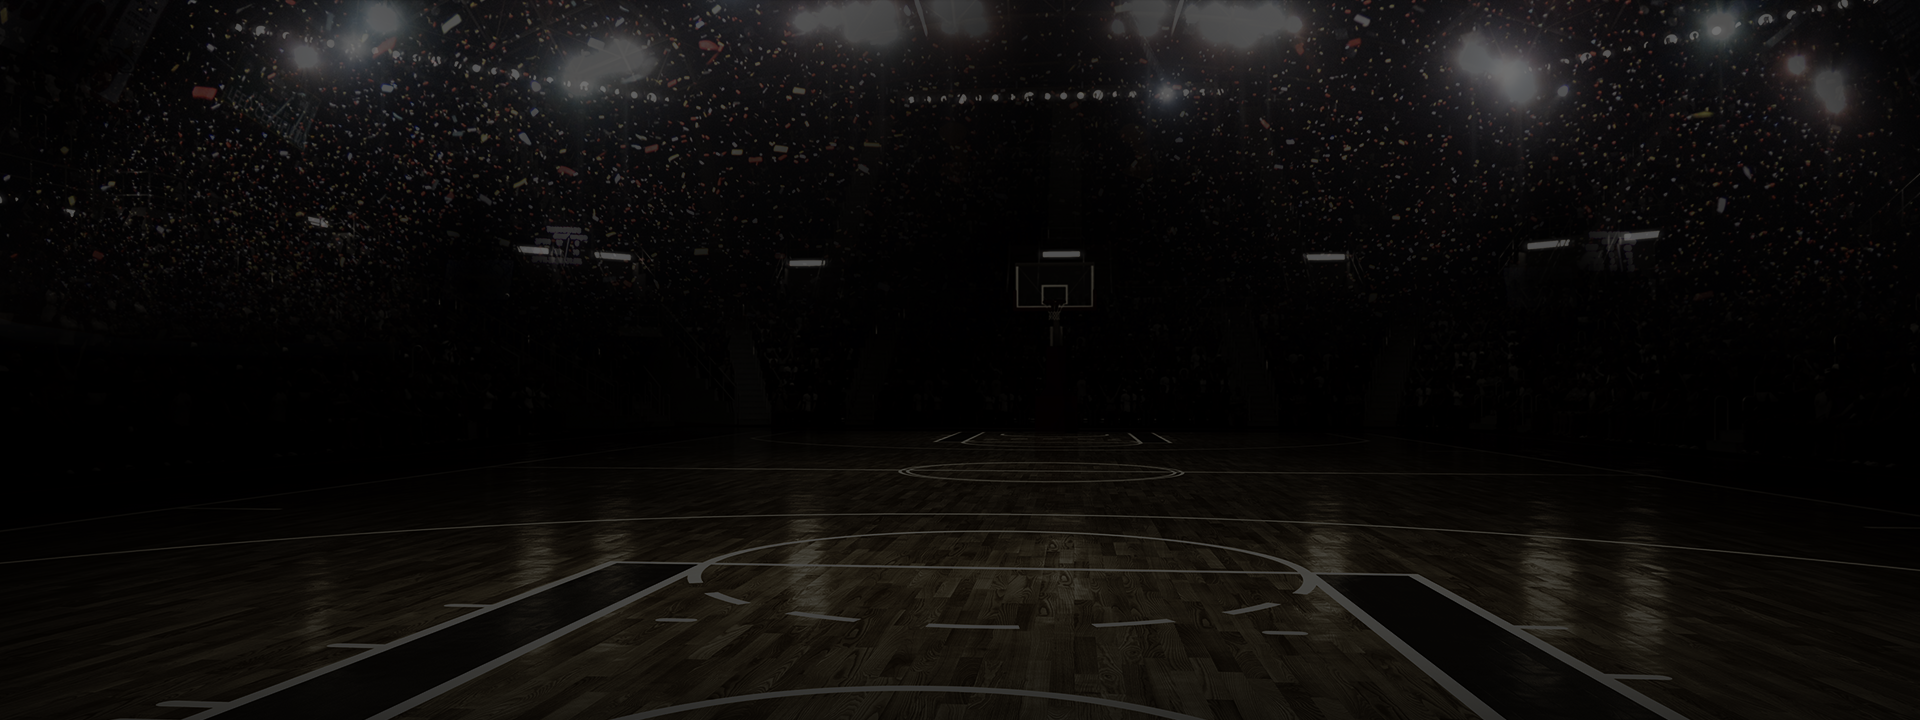 Large Product Image of NBA for Fire TV